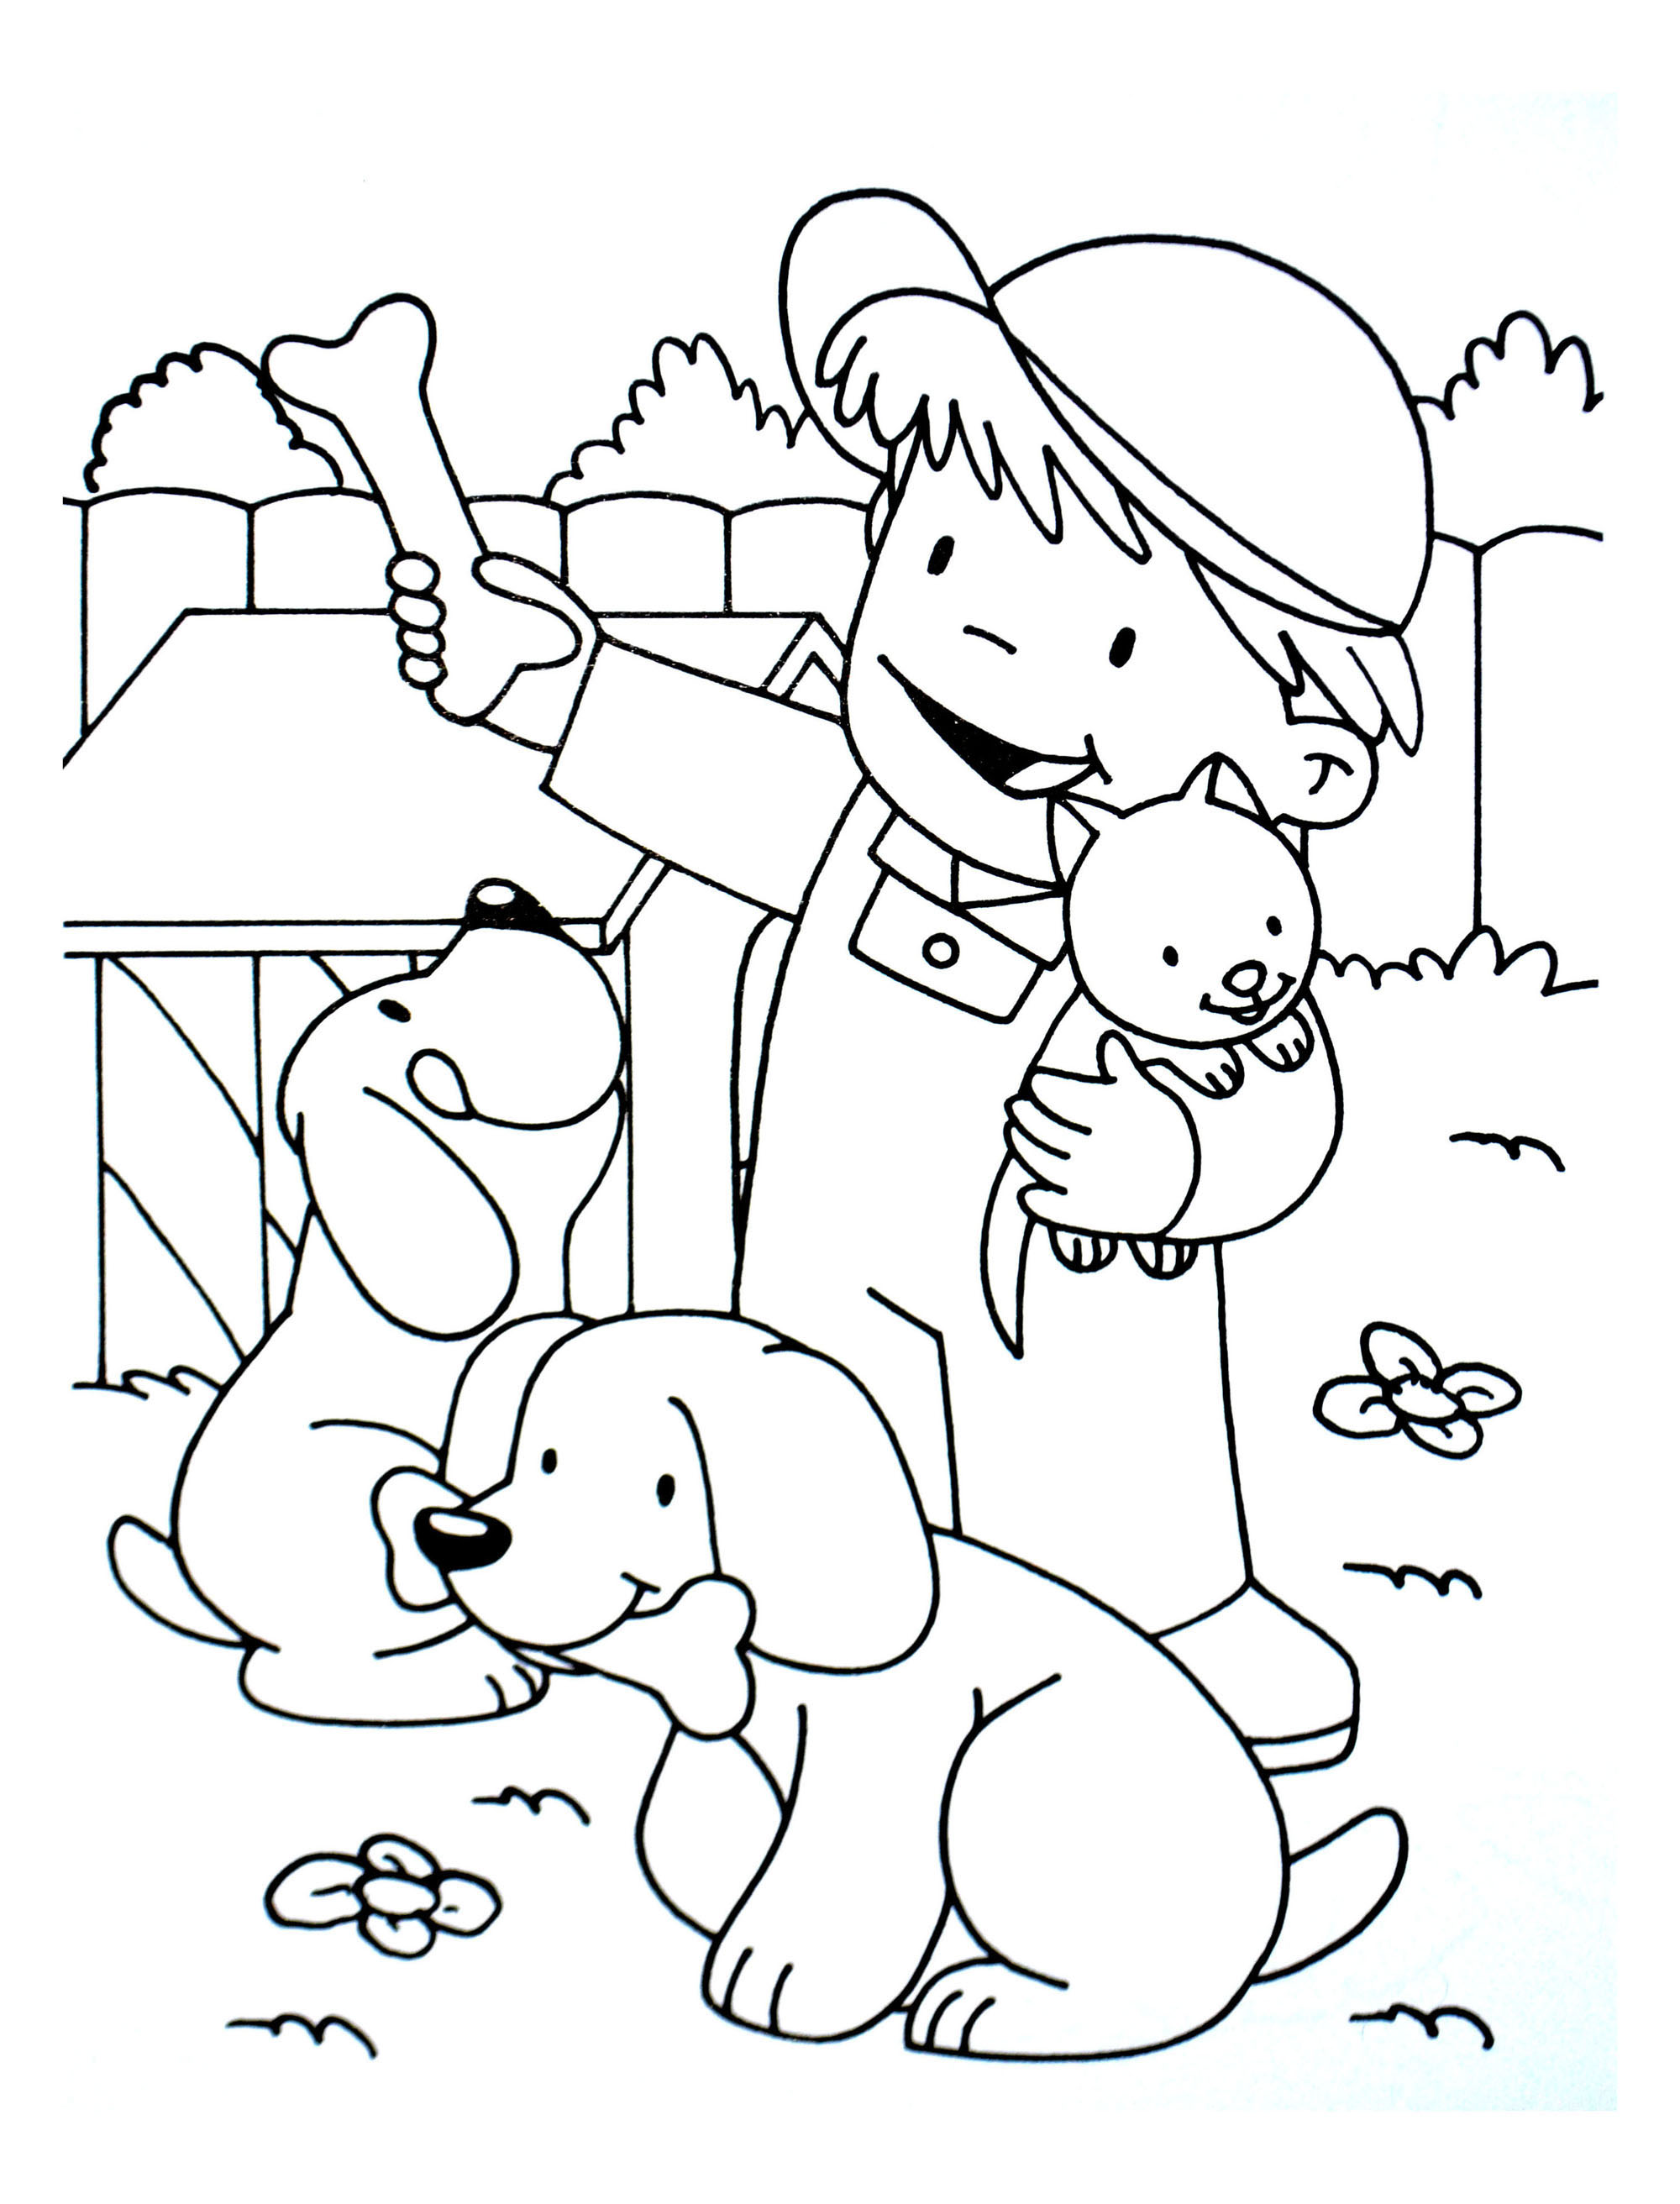 Dogs To Color For Children